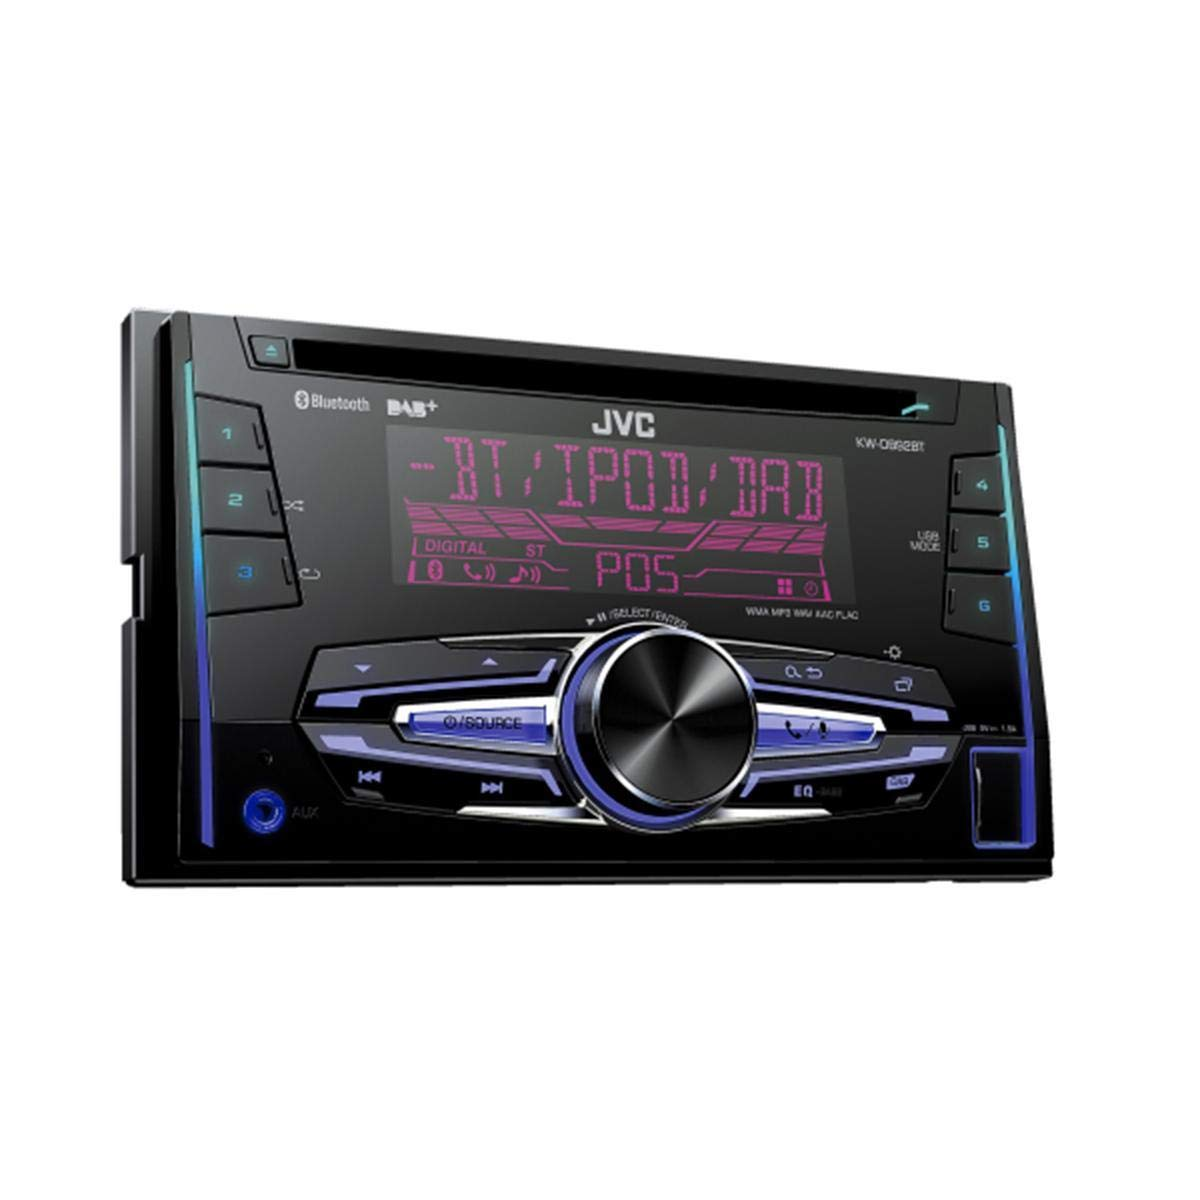 JVC KW-DB92BT Double Din Stereo with Bluetooth, DAB, USB, CD and Aux